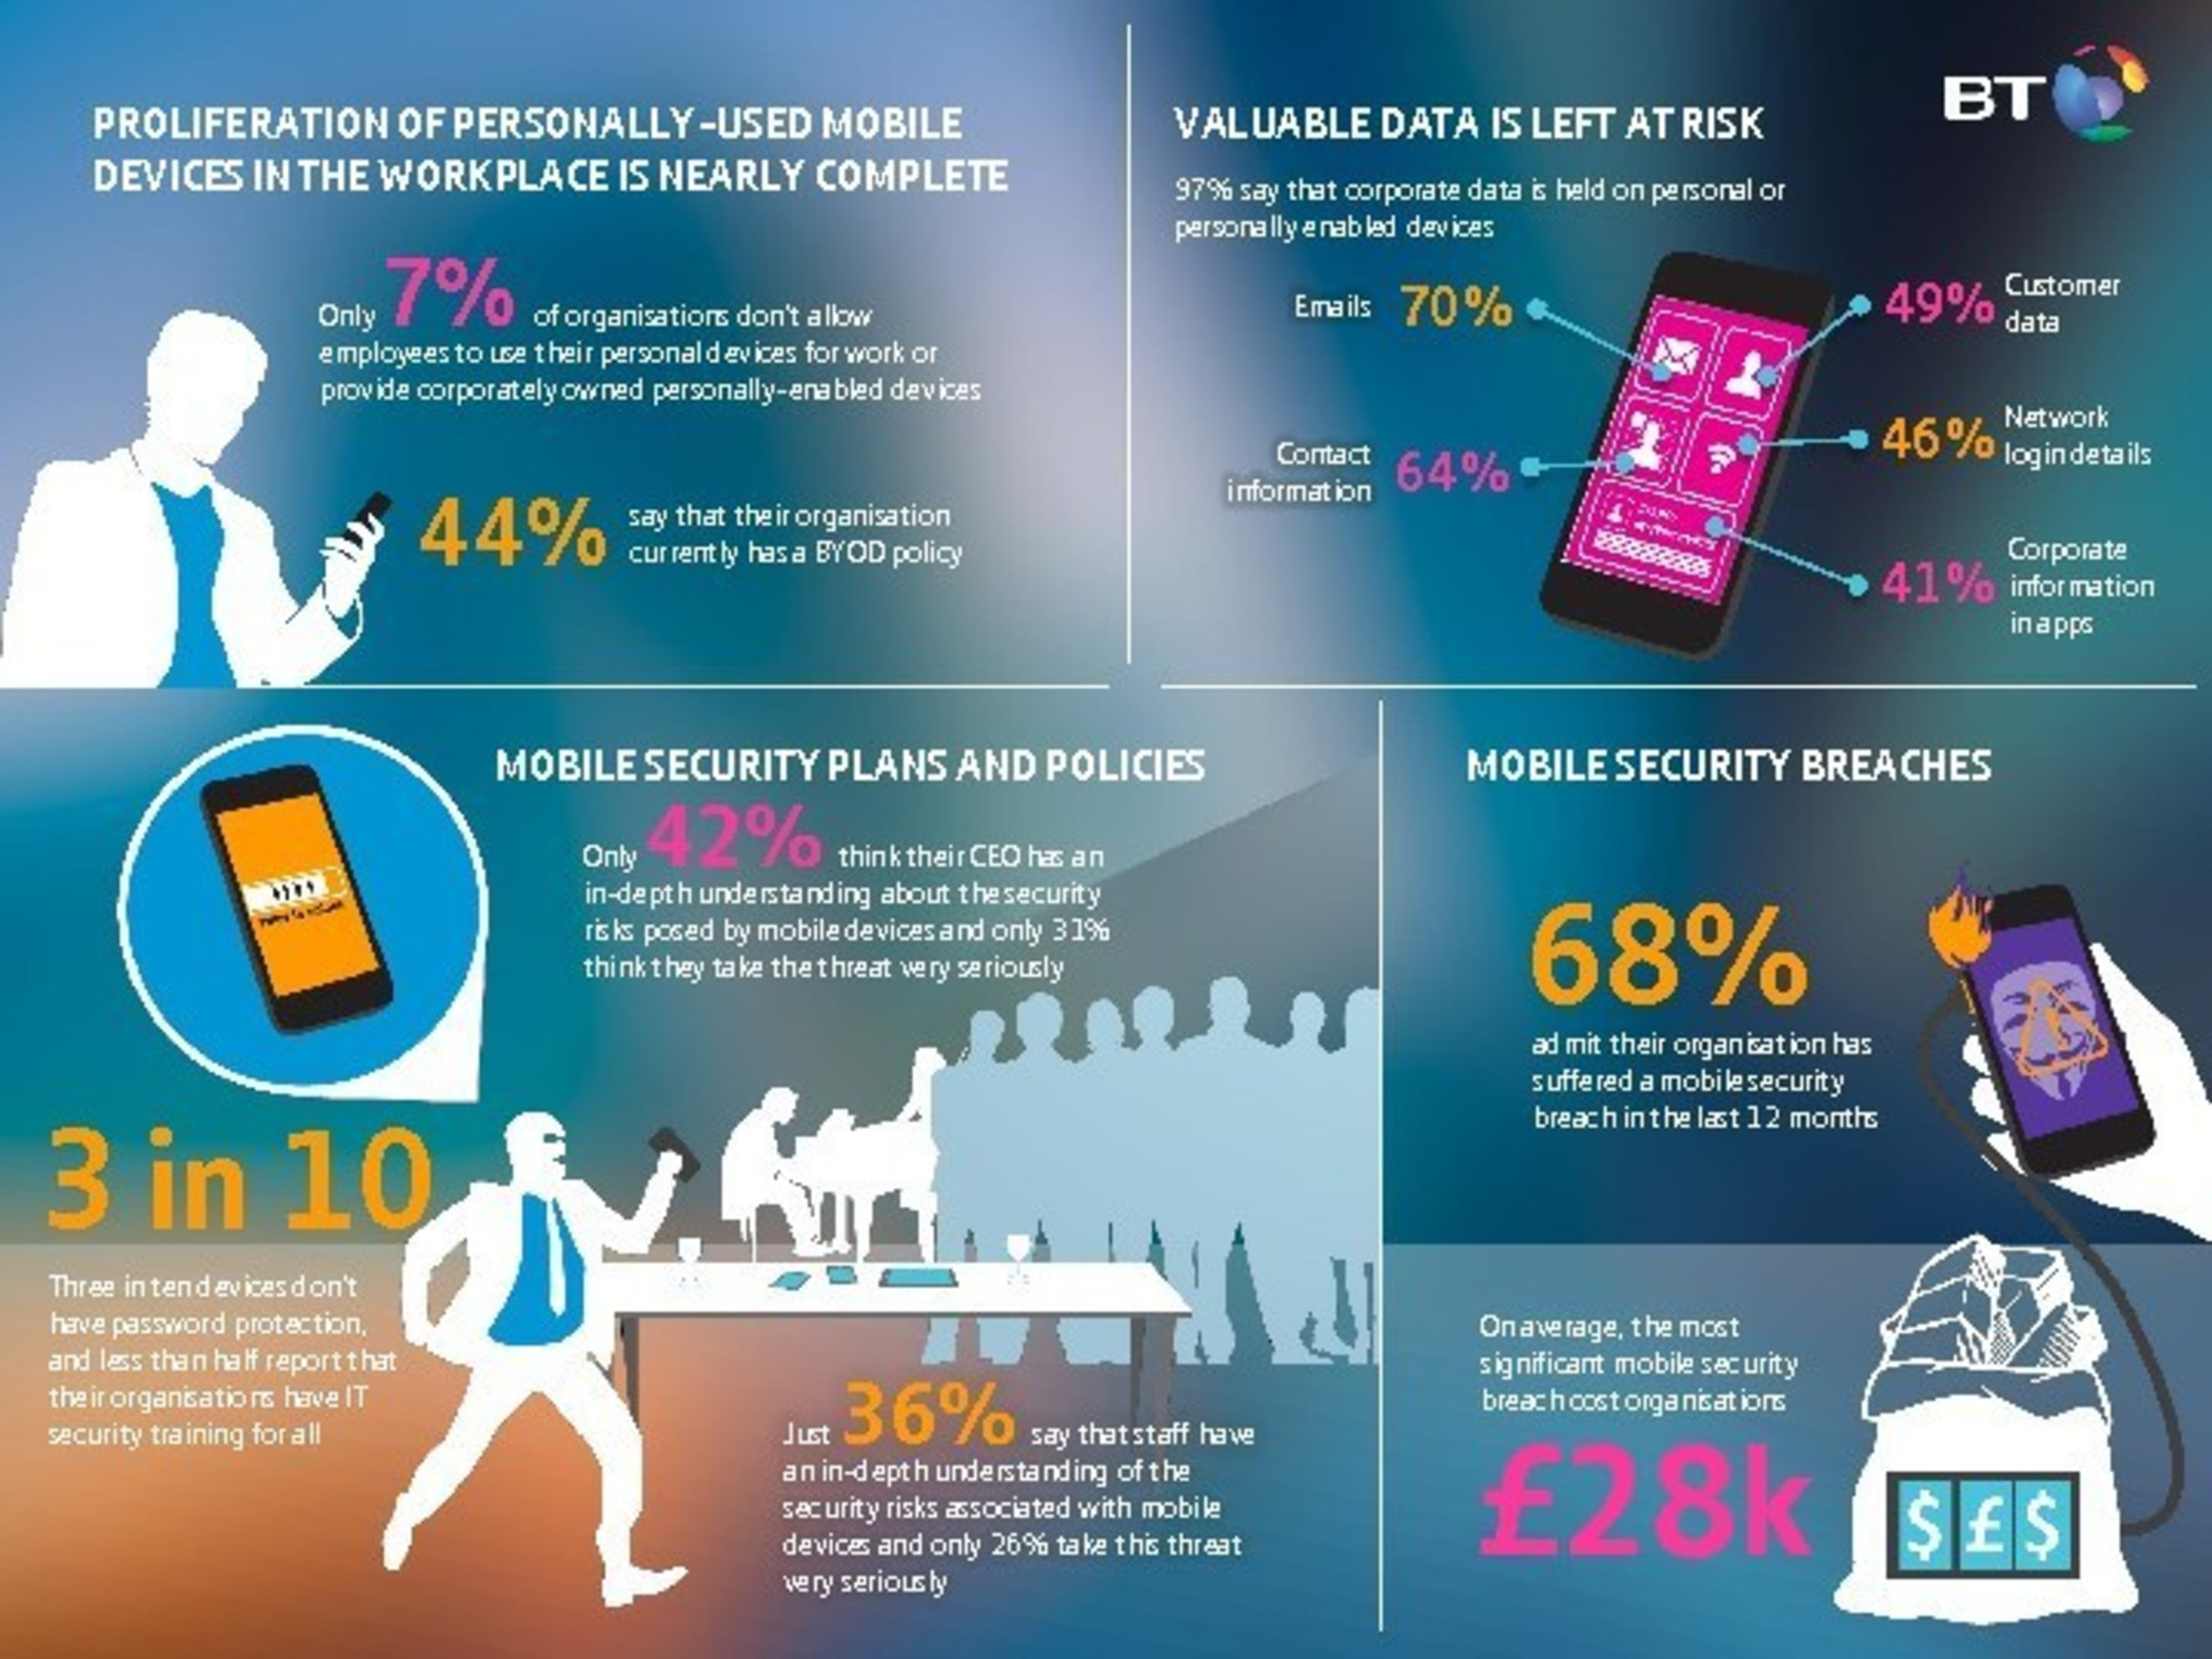 Infographic: Mobile devices represent a significant security risk for business finds a new global study from BT